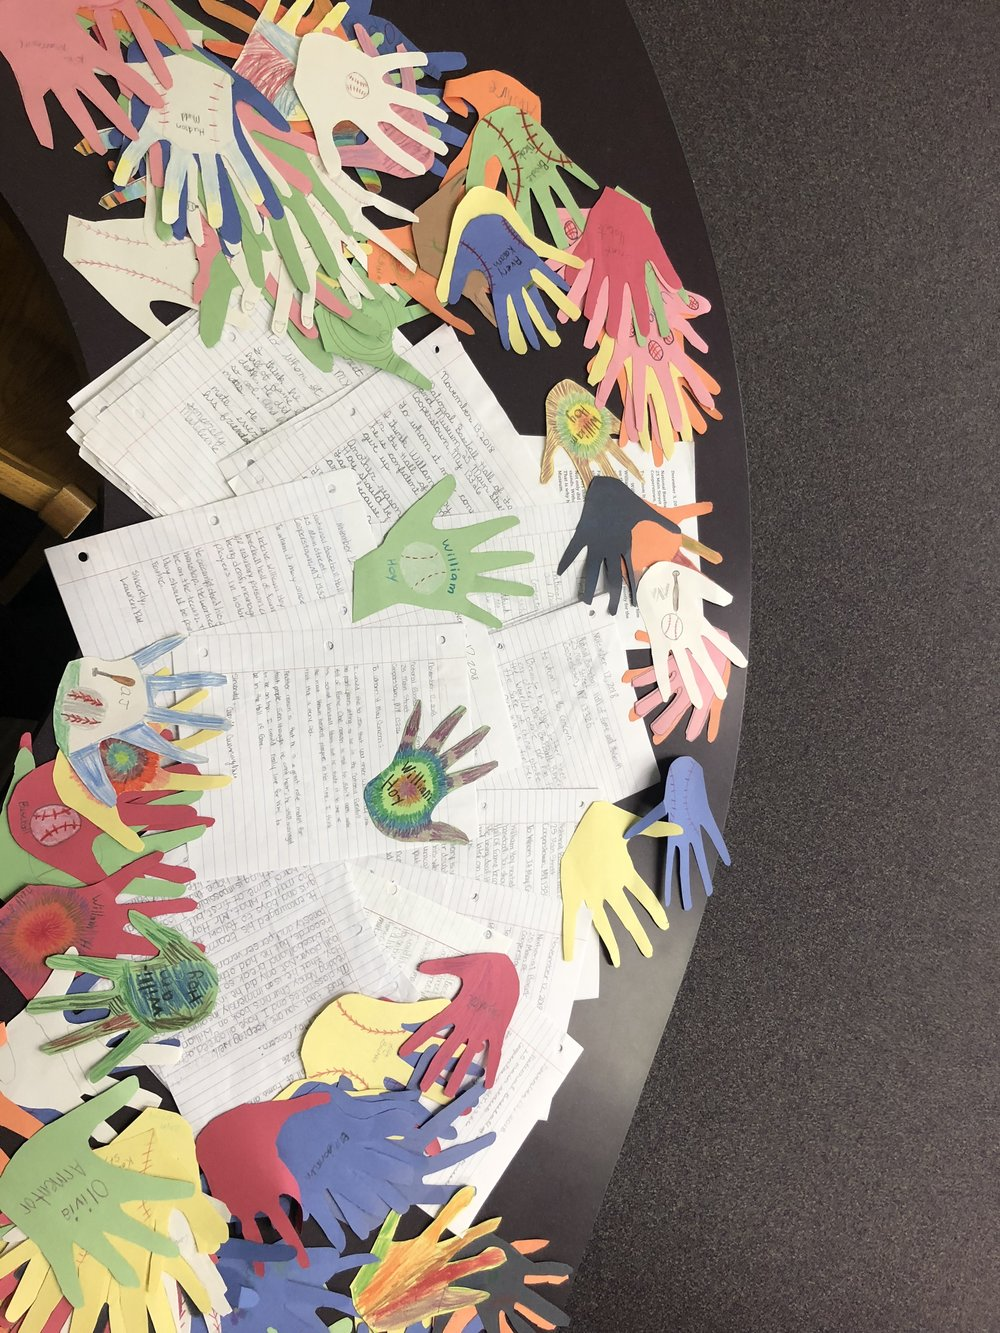 Letters from the children of Our Lady Queen of Heaven Catholic School in Lake Charles, Louisiana